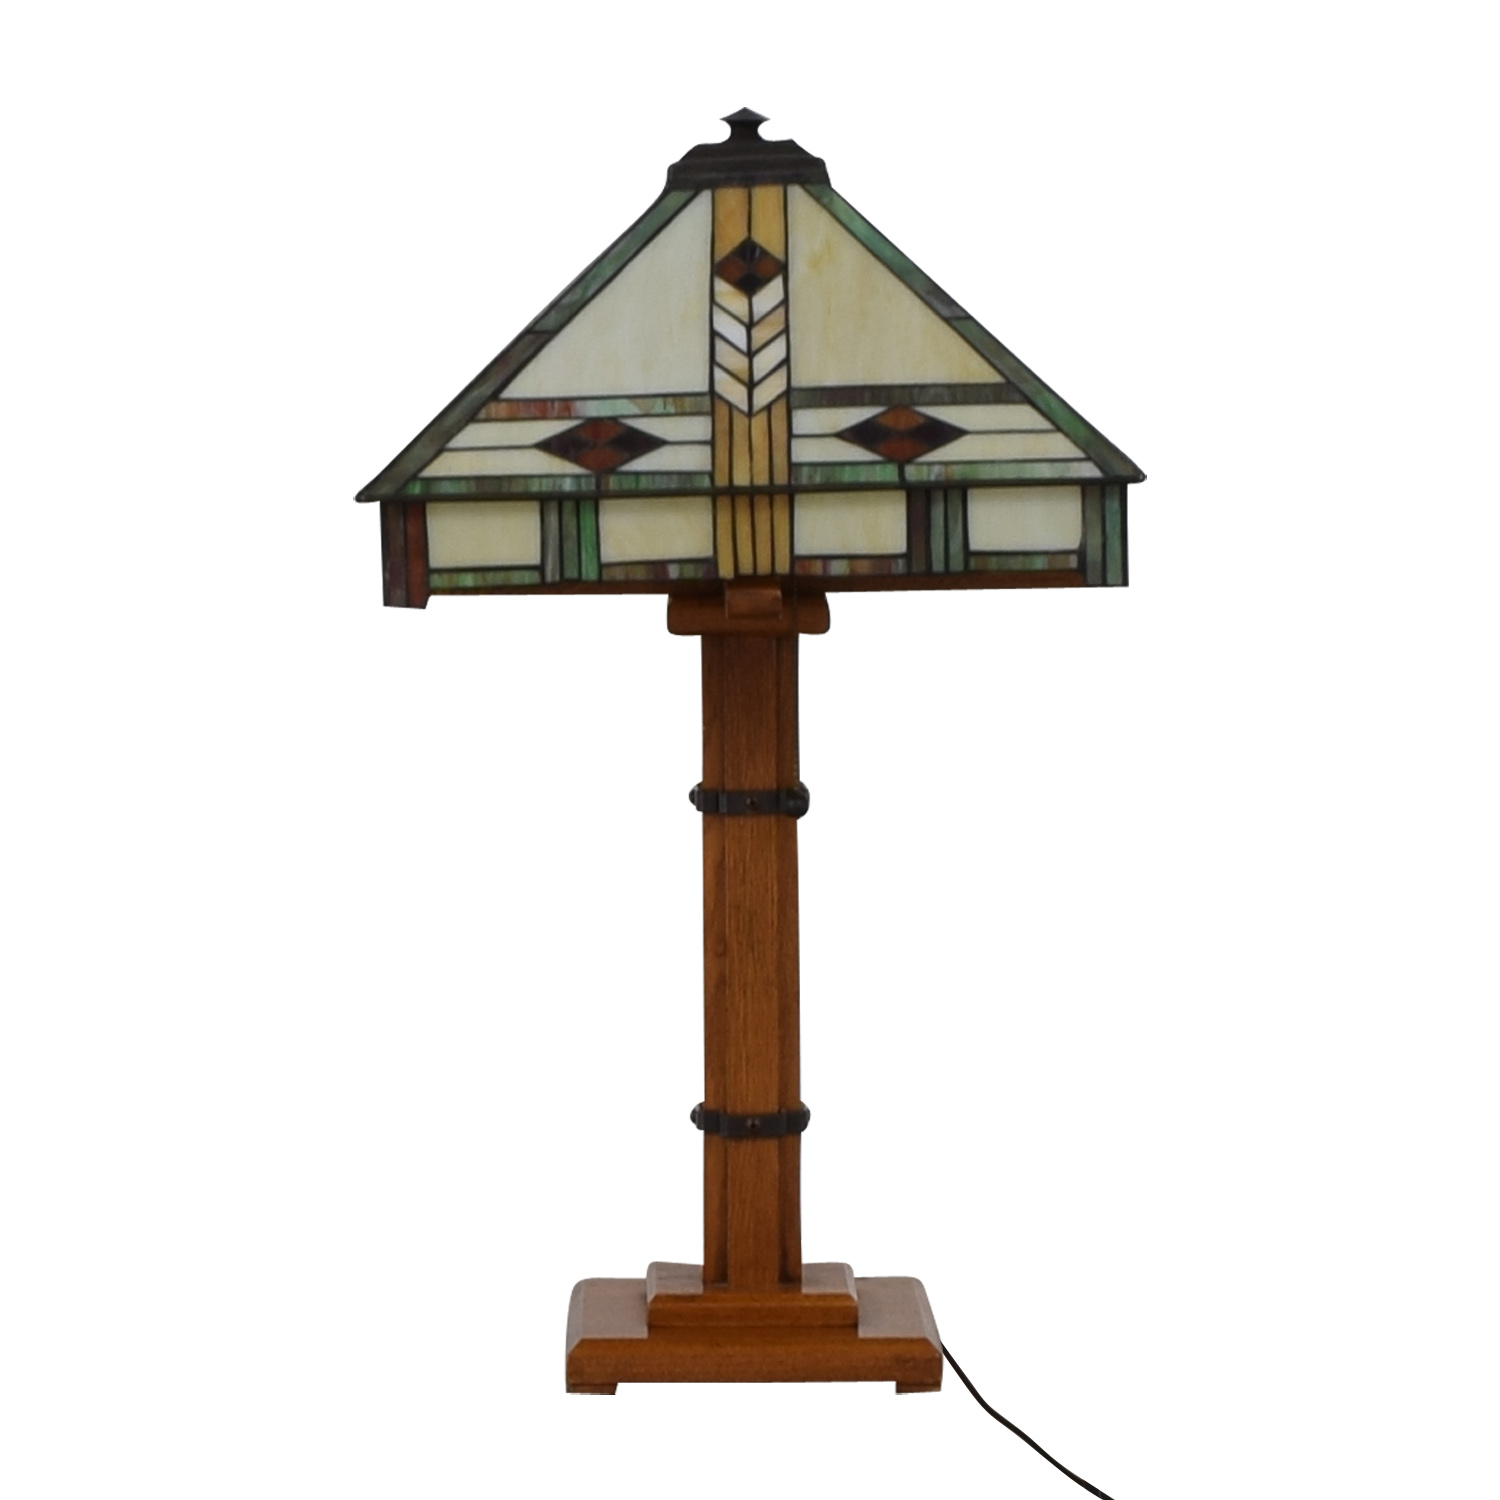 Stickley Furniture Stickley Furniture Mission Style Table Lamp Lamps